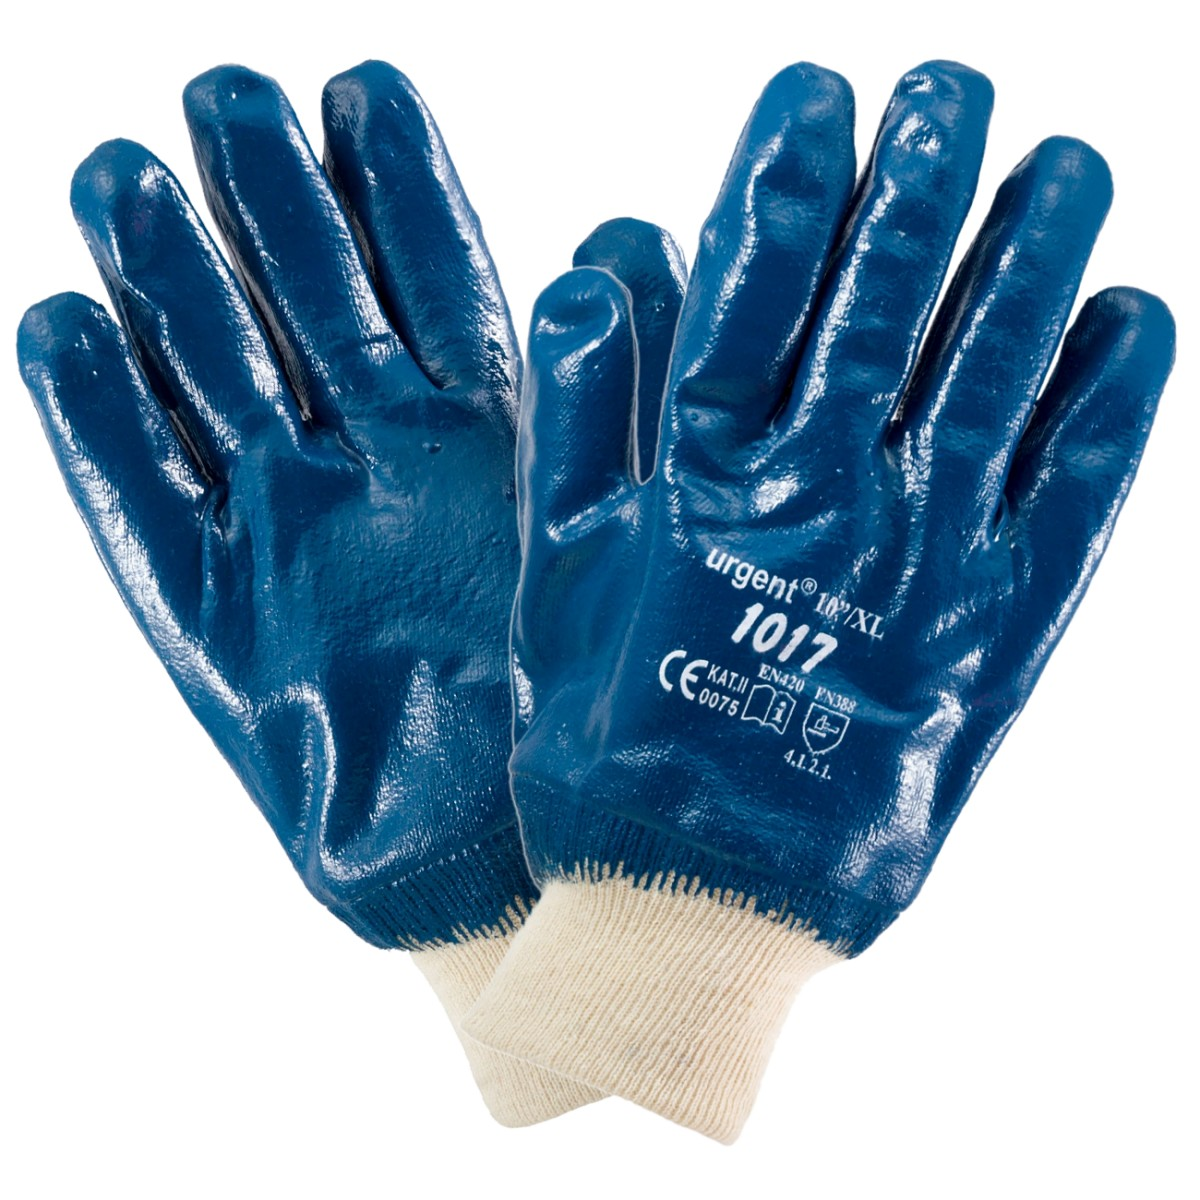 BASIC 1017 Nitrile Gloves